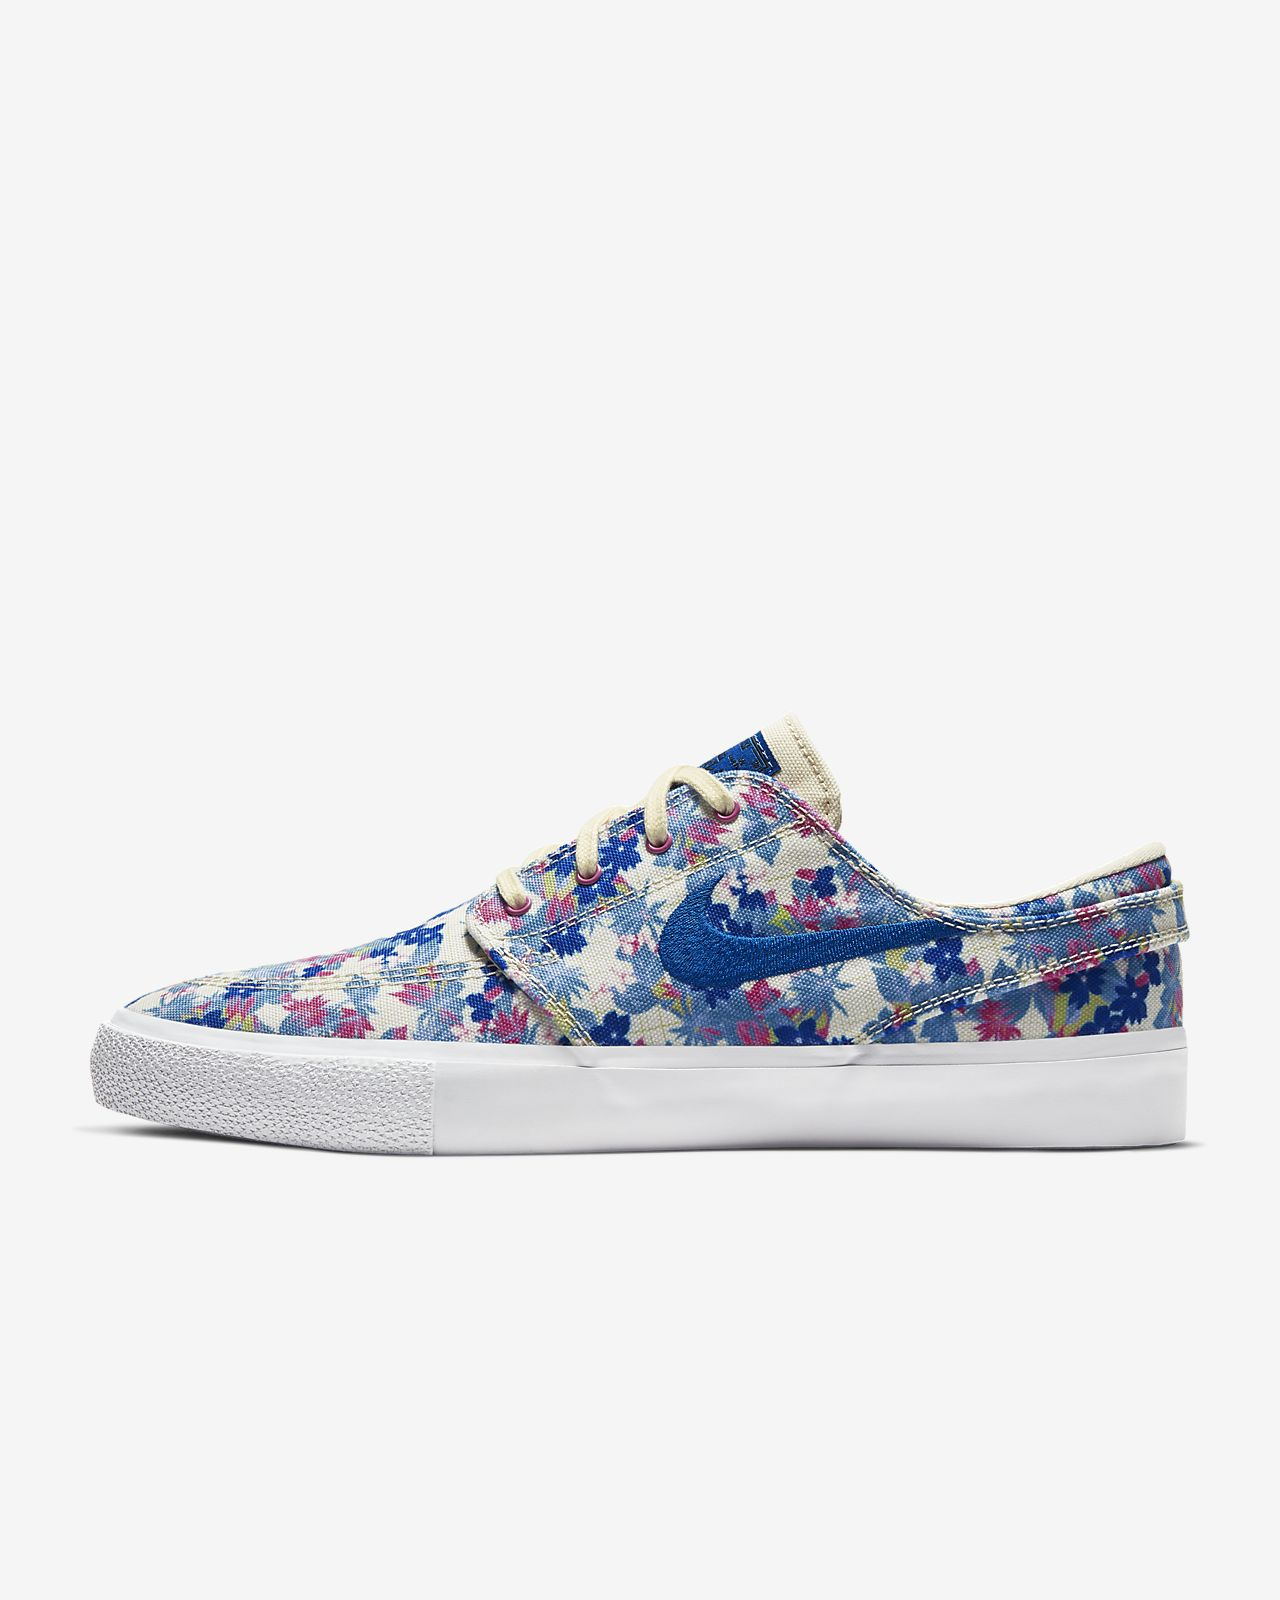 Amazing Savings on Nike SB Zoom Stefan Janoski Slip RM SE